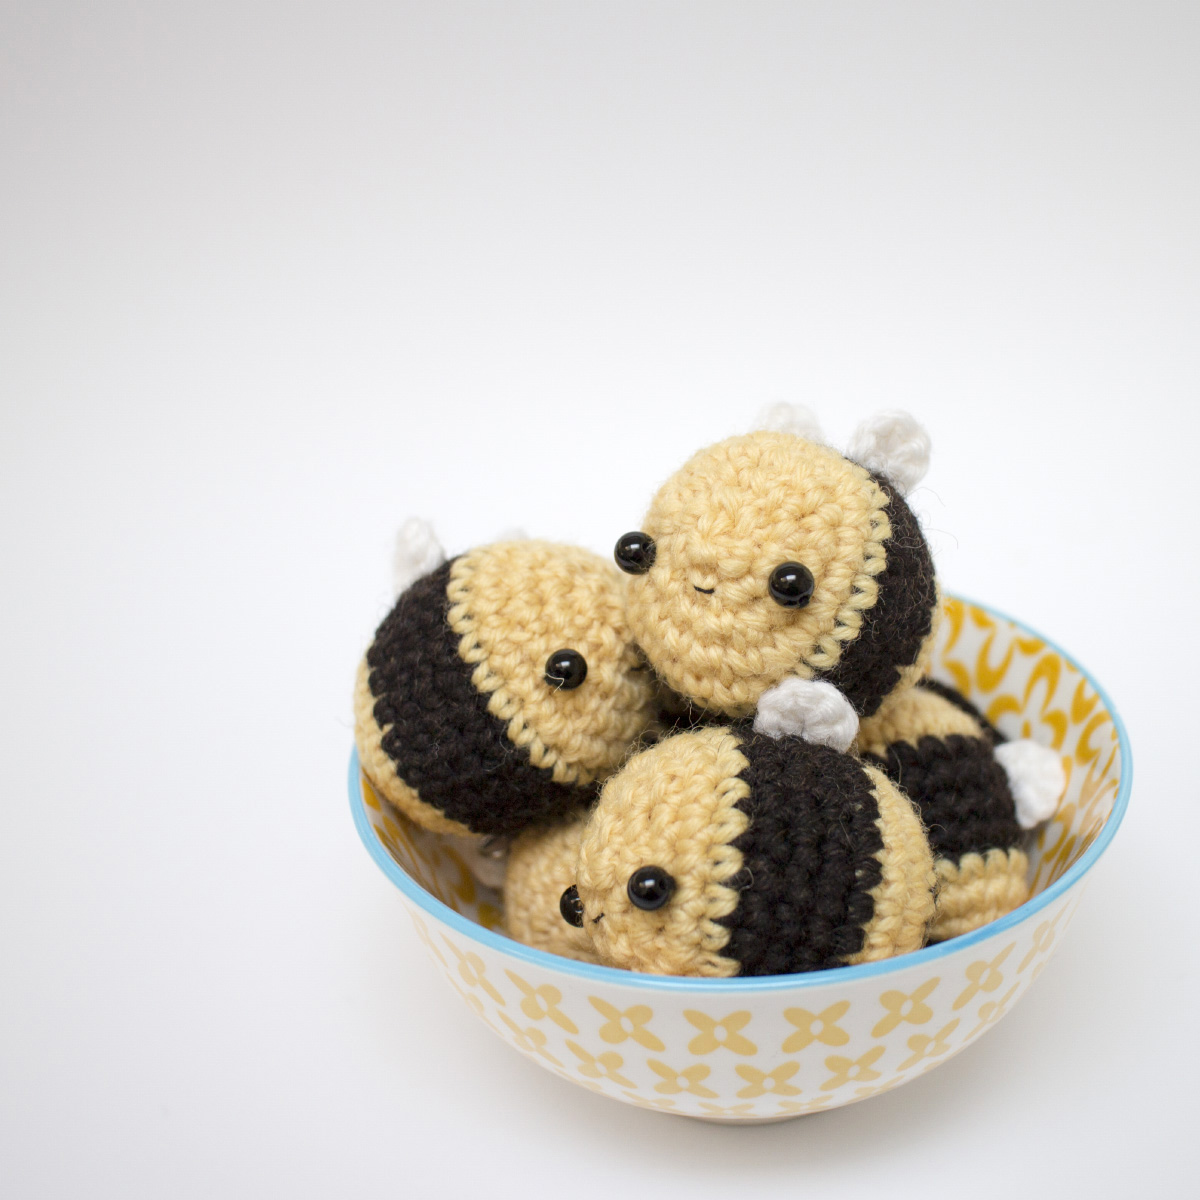 Crochet Amigurumi Bee Keychain Gift Idea Sold individually | Hello ... | 1200x1200